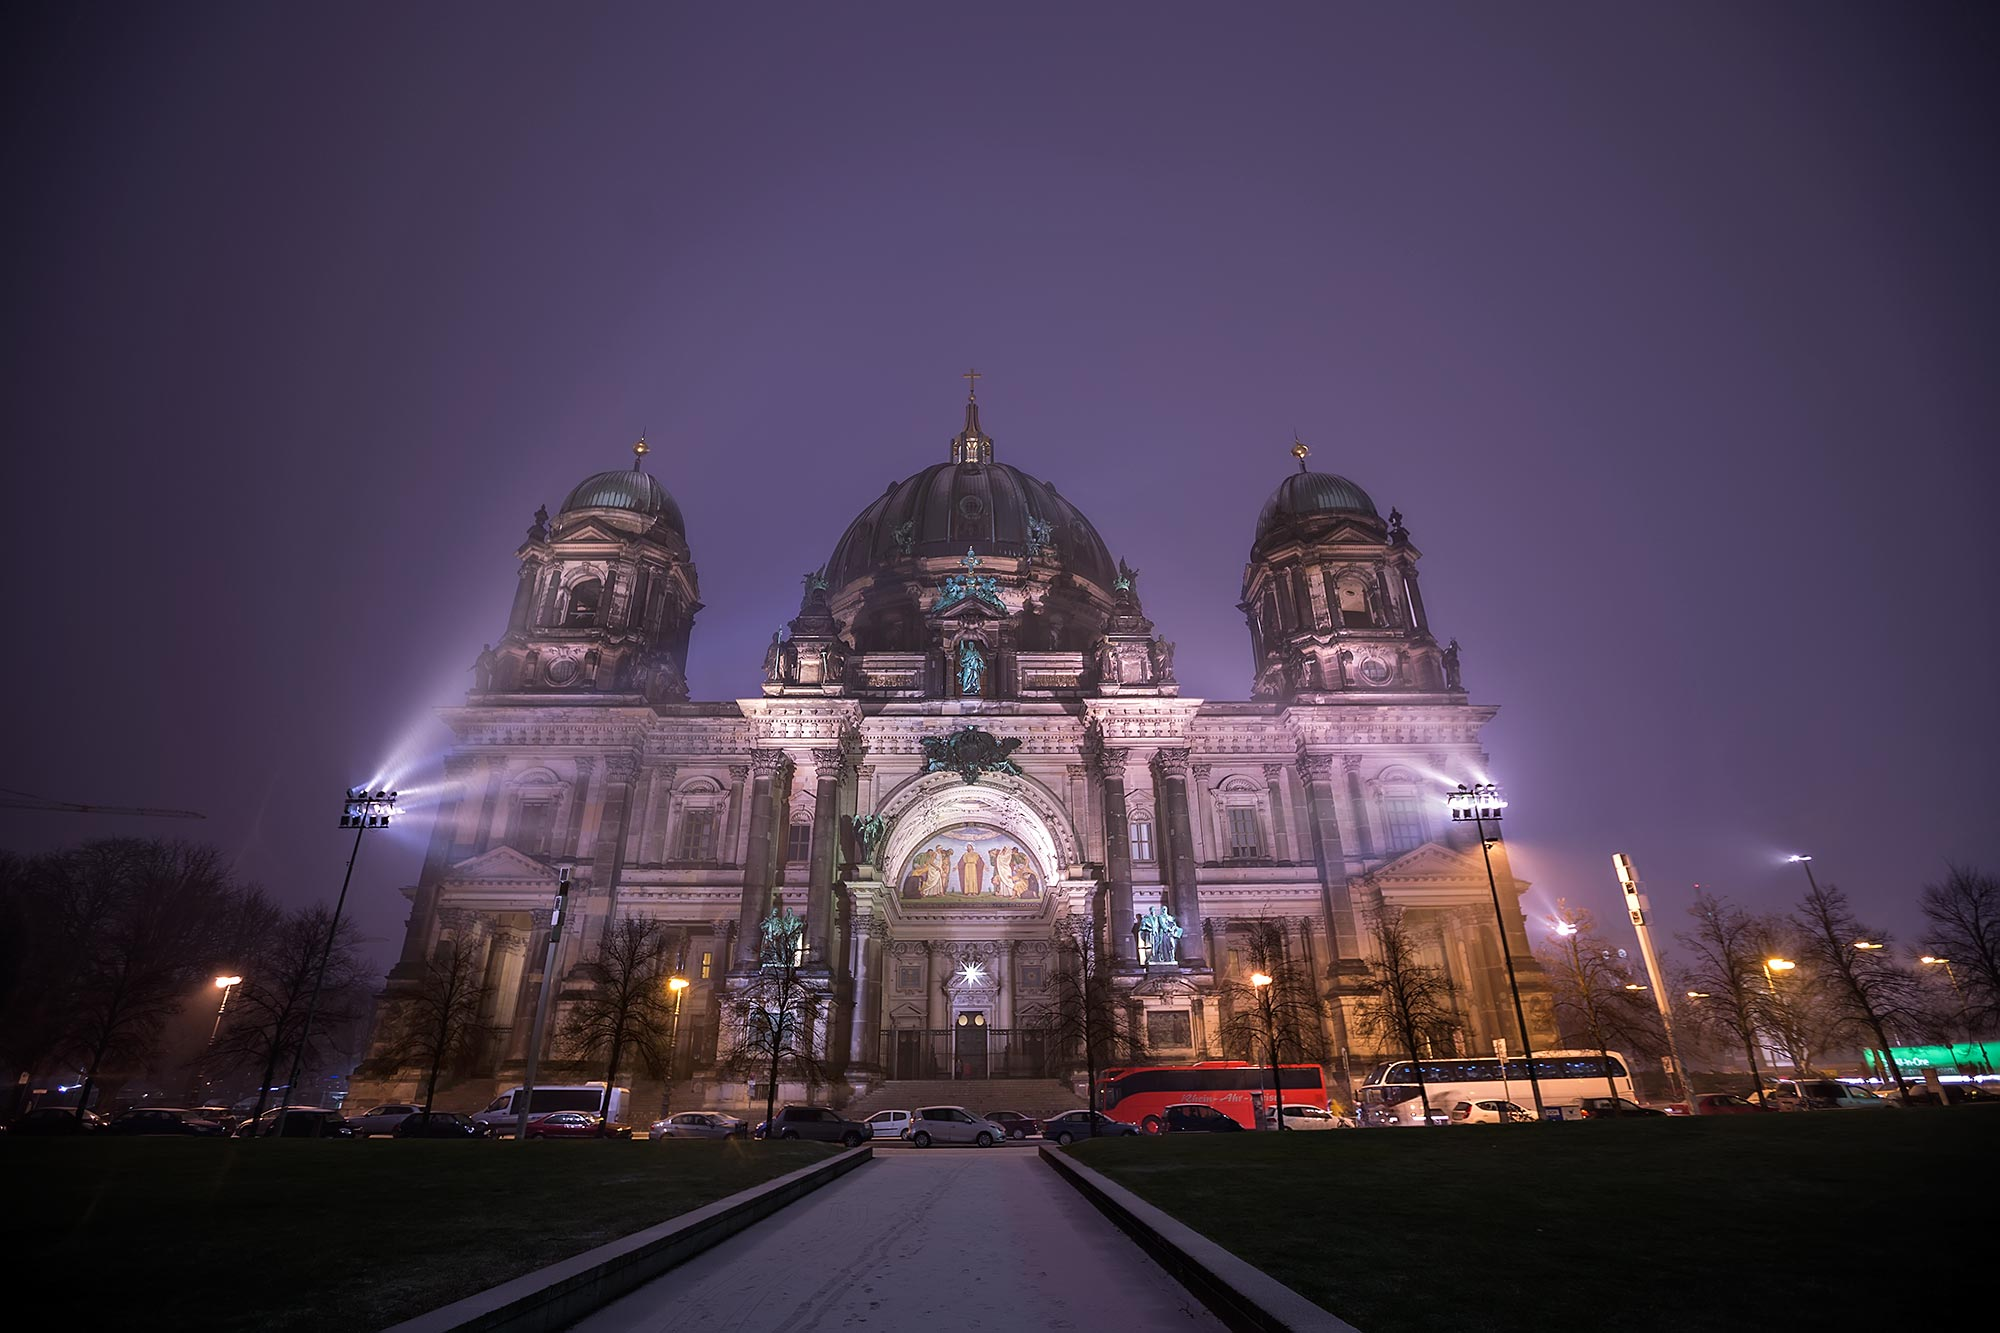 Berlin Cathedral at Night. © Ulli Maier & Nisa Maier